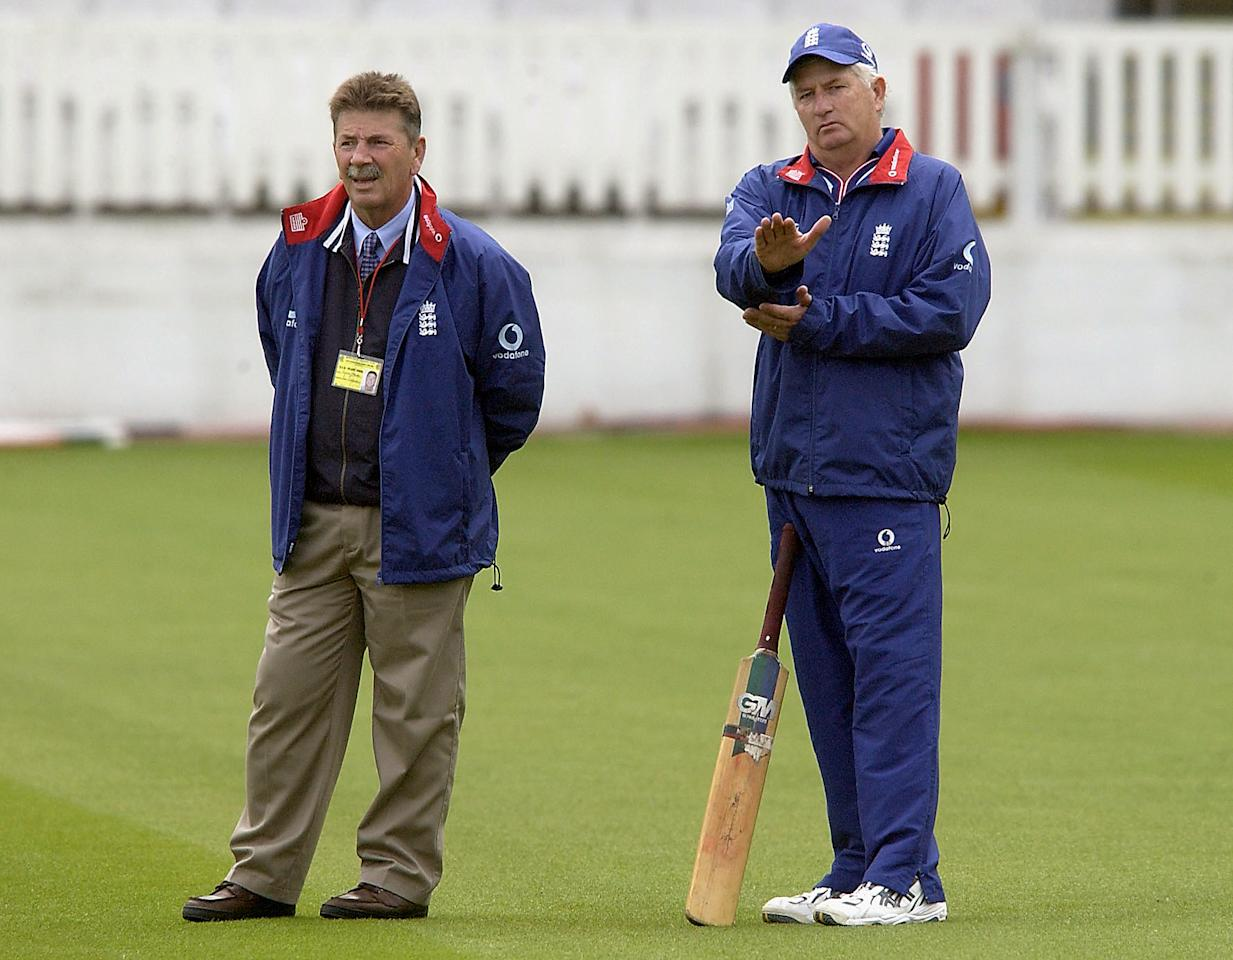 LONDON - MAY 20:  Rodney Marsh (L), one the England selectors, chats with Duncan Fletcher during the England nets session prior to the 1st NPower Test match at Lords Cricket Ground on May 20, 2003 in London. (Photo by Tom Shaw/Getty Images)